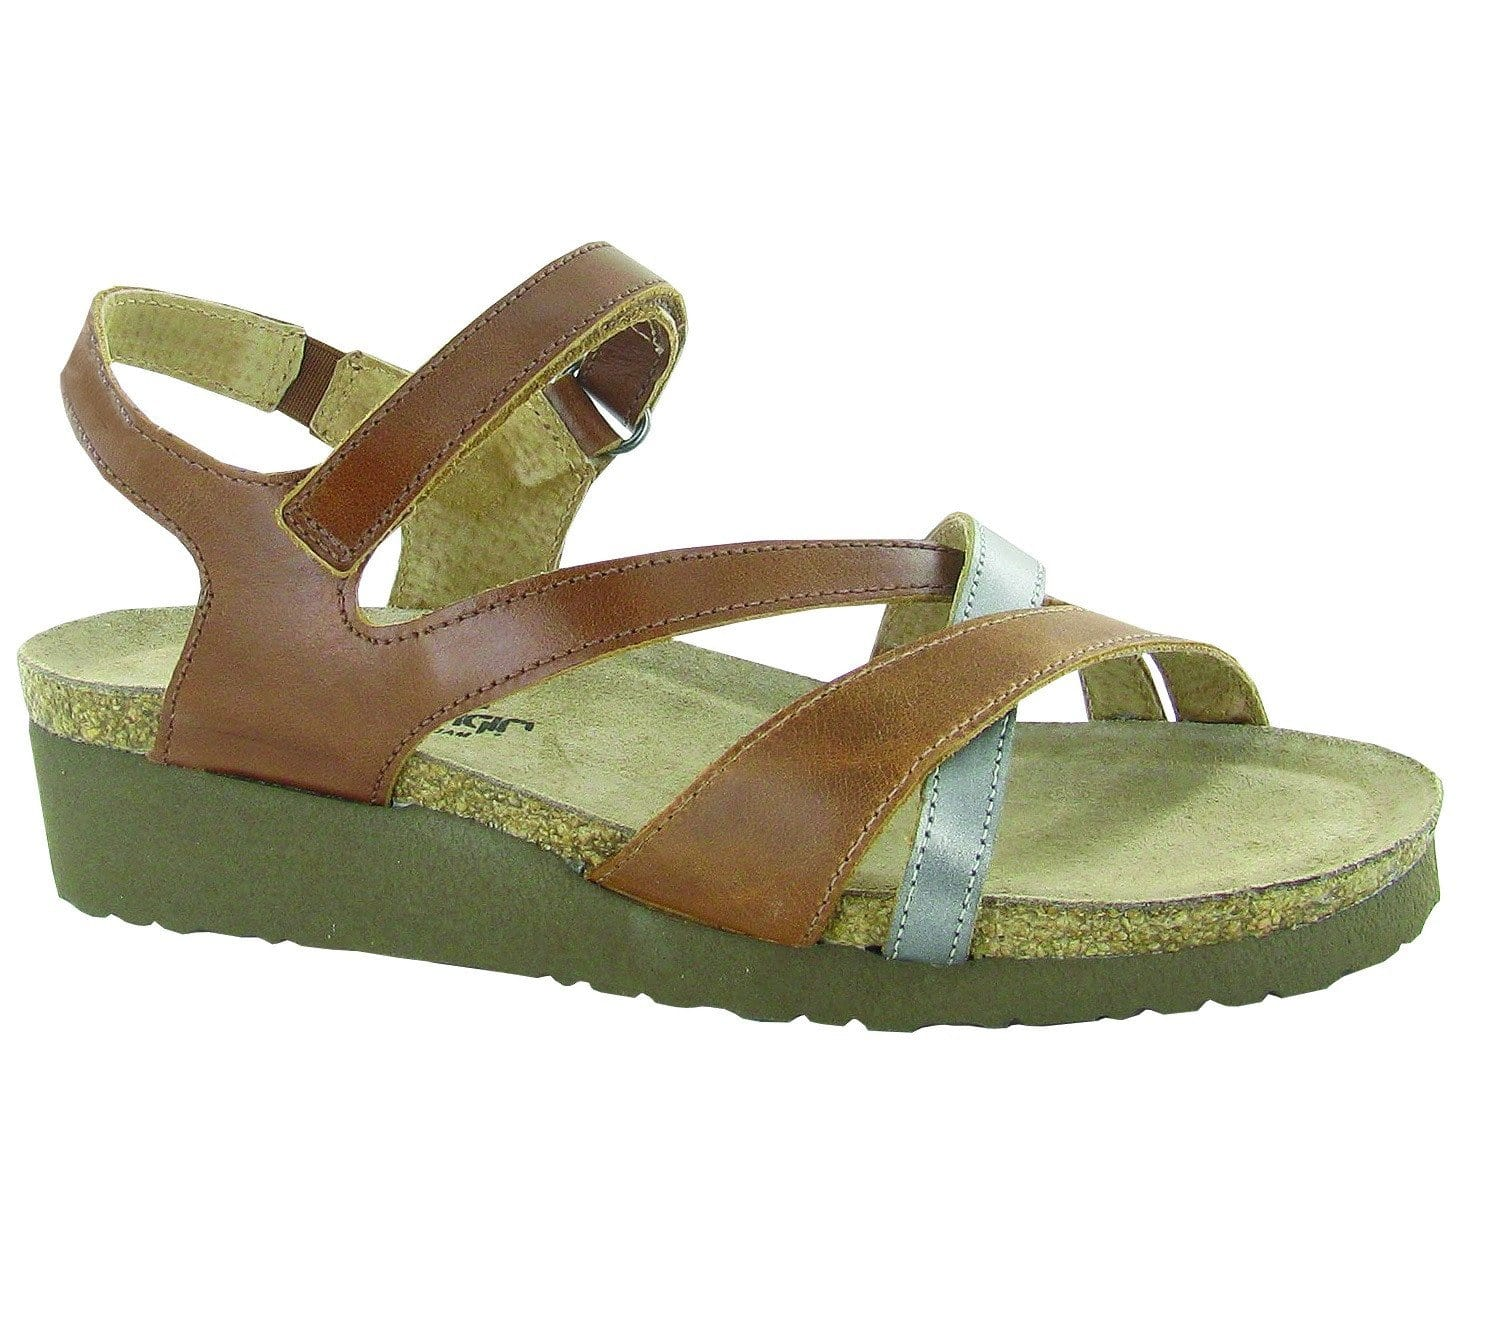 Naot Sophia Women's Crisscross strap Leather Sandal